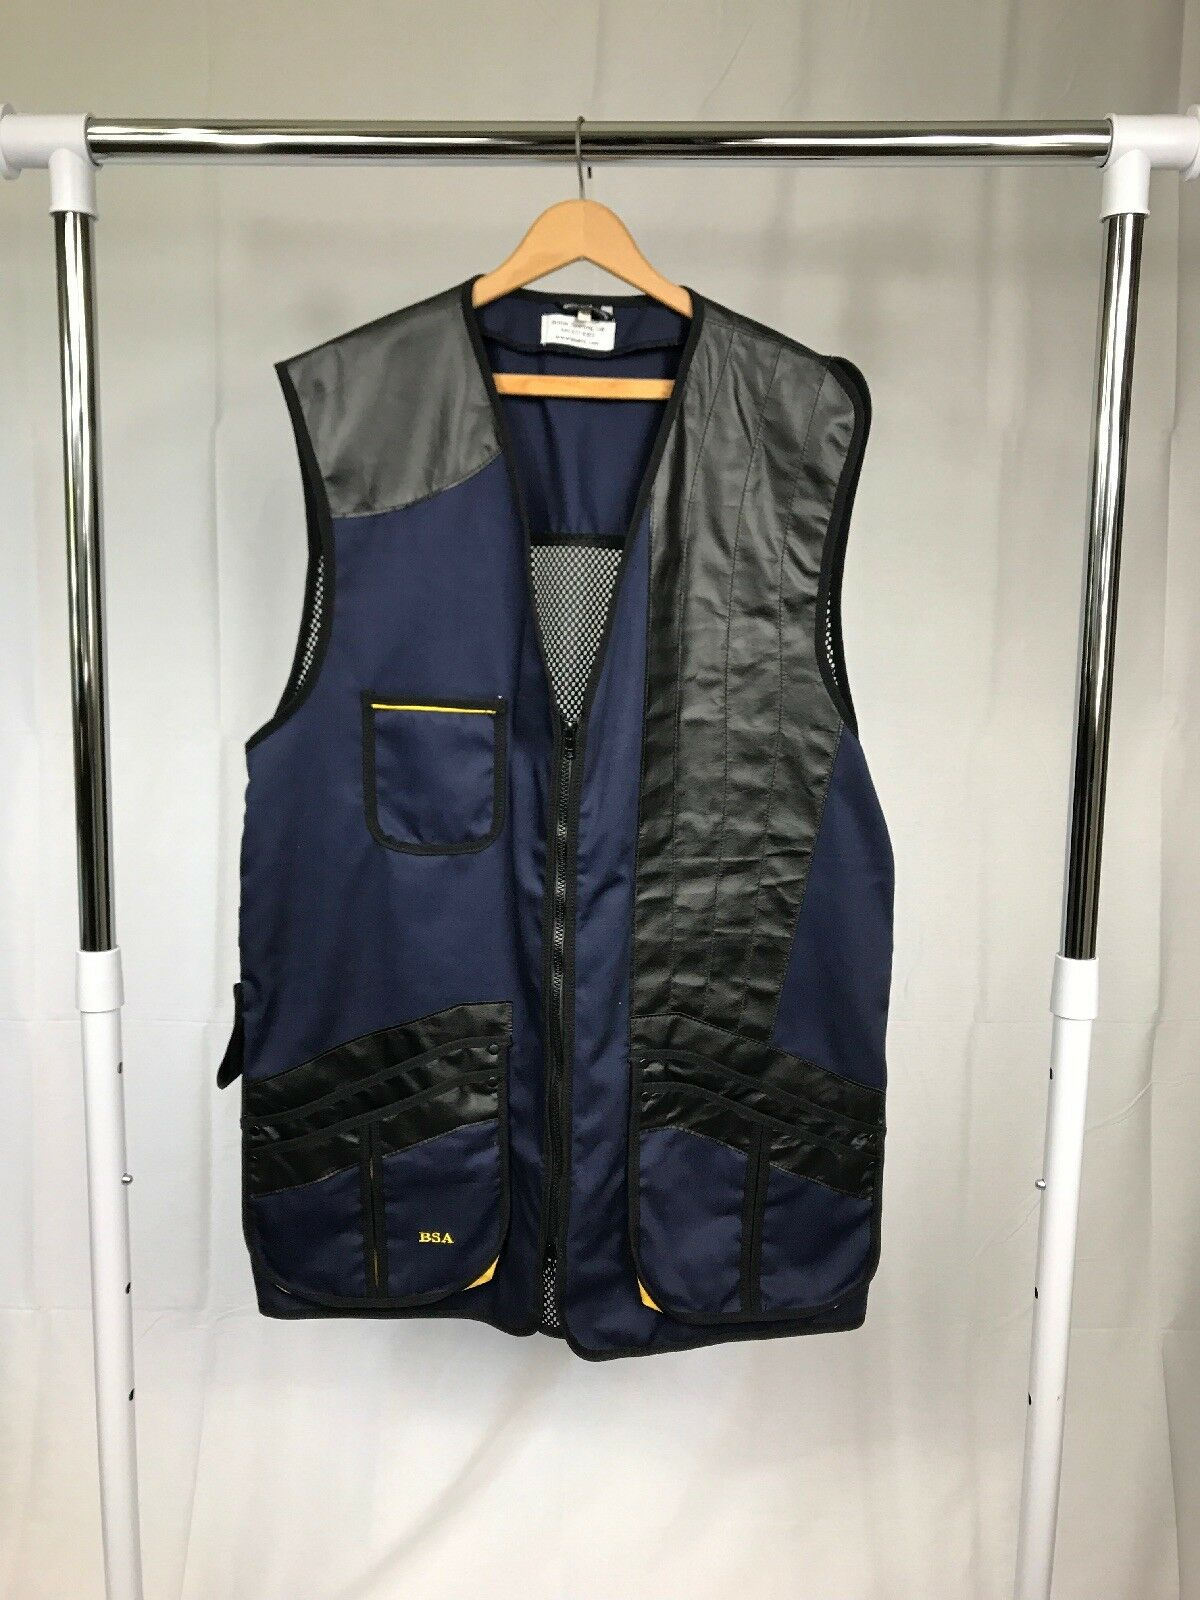 British Sporting Arms Mesh Shooting  Vest Made in England Men's 46 (XL) LH  save up to 70%